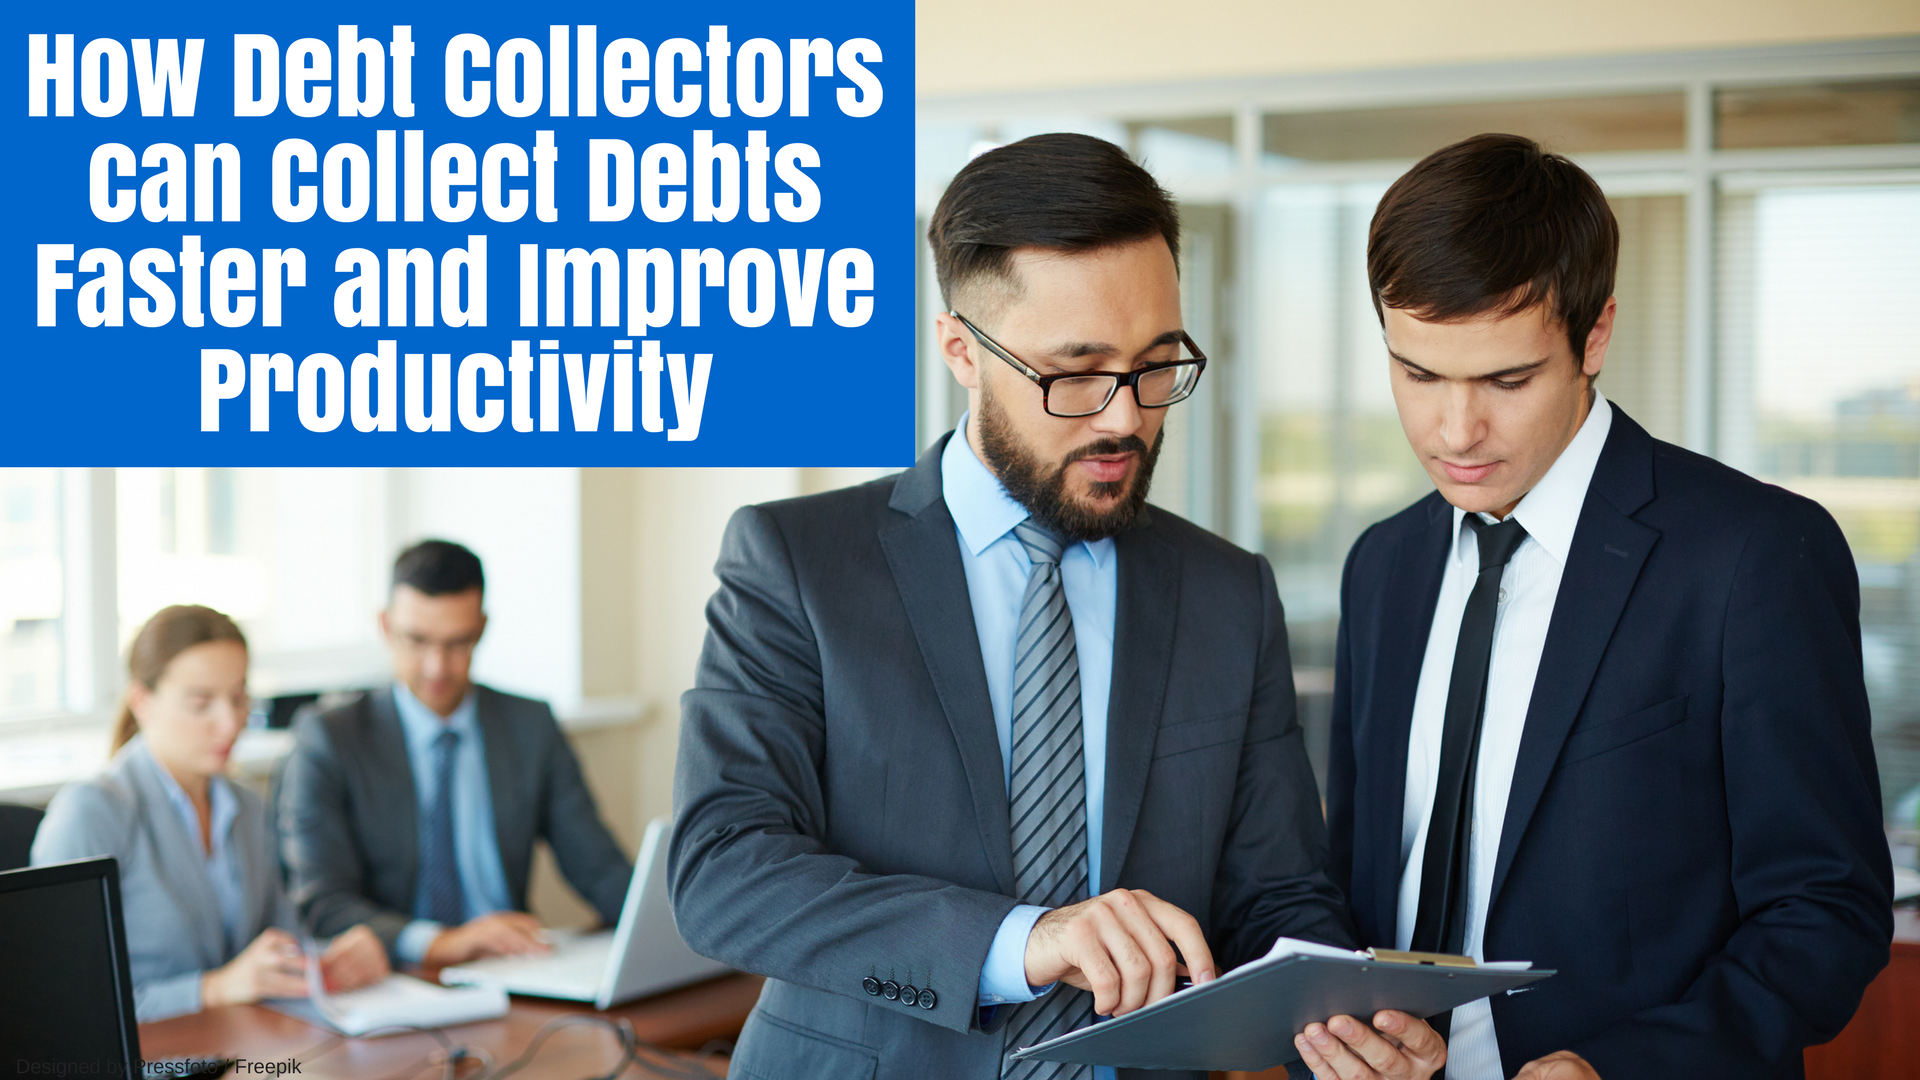 How Debt Collectors can Collect Debts Faster and Improve Productivity